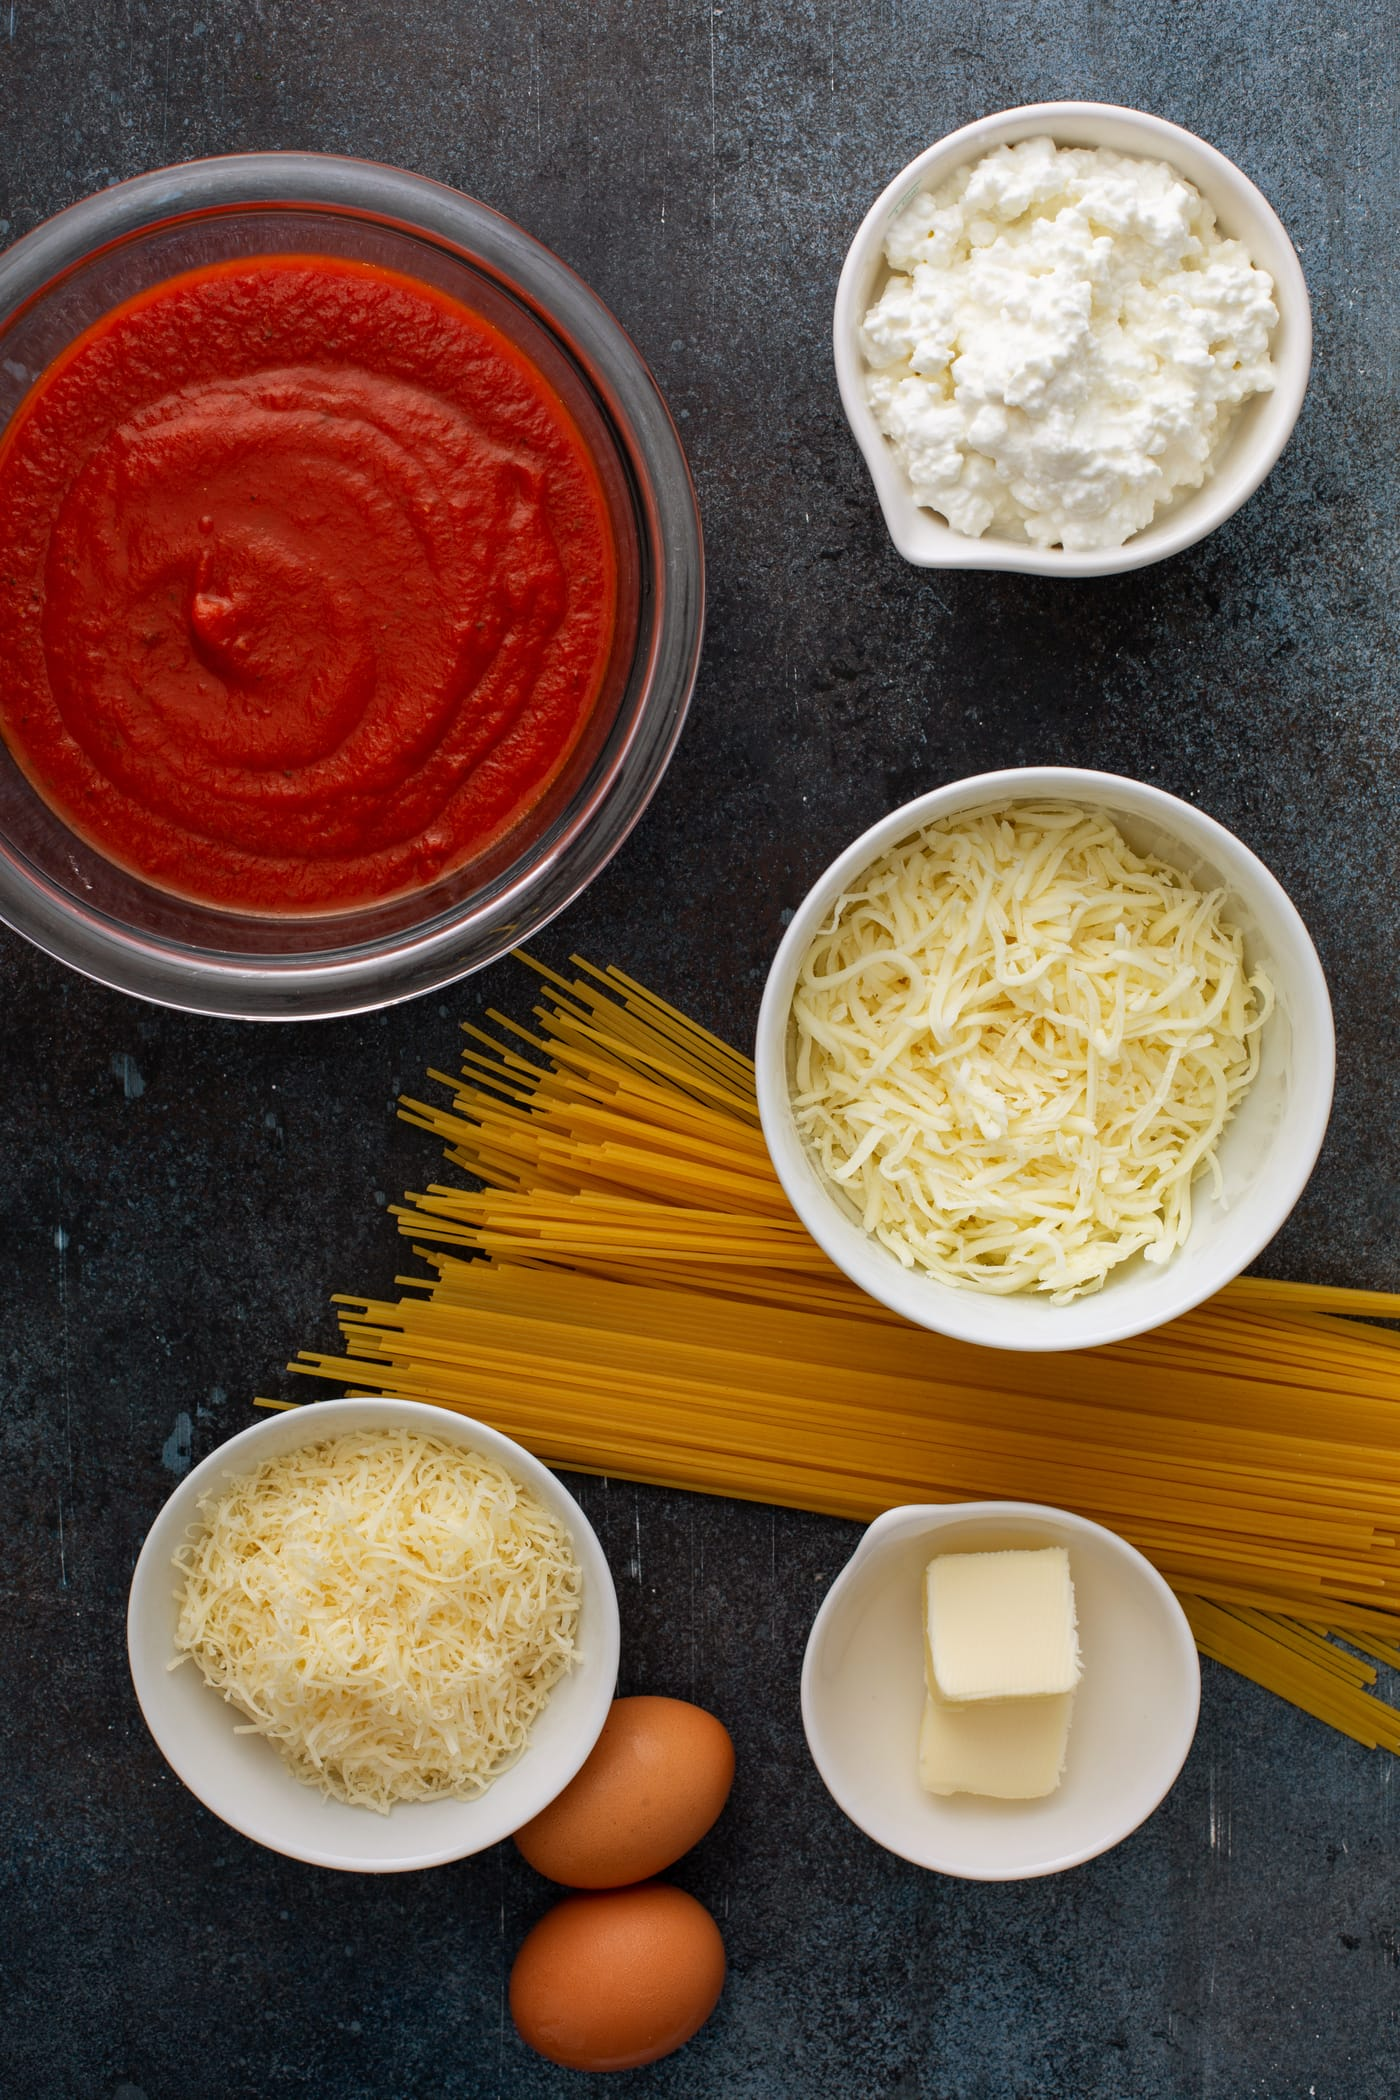 Small bowl containing ingredients for baked spaghetti pie. There is a handful of uncooked spaghetti pasta, a bowl of spaghetti sauce, small containers of shredded mozzarella cheese, cottage cheese, and Parmesan cheese.